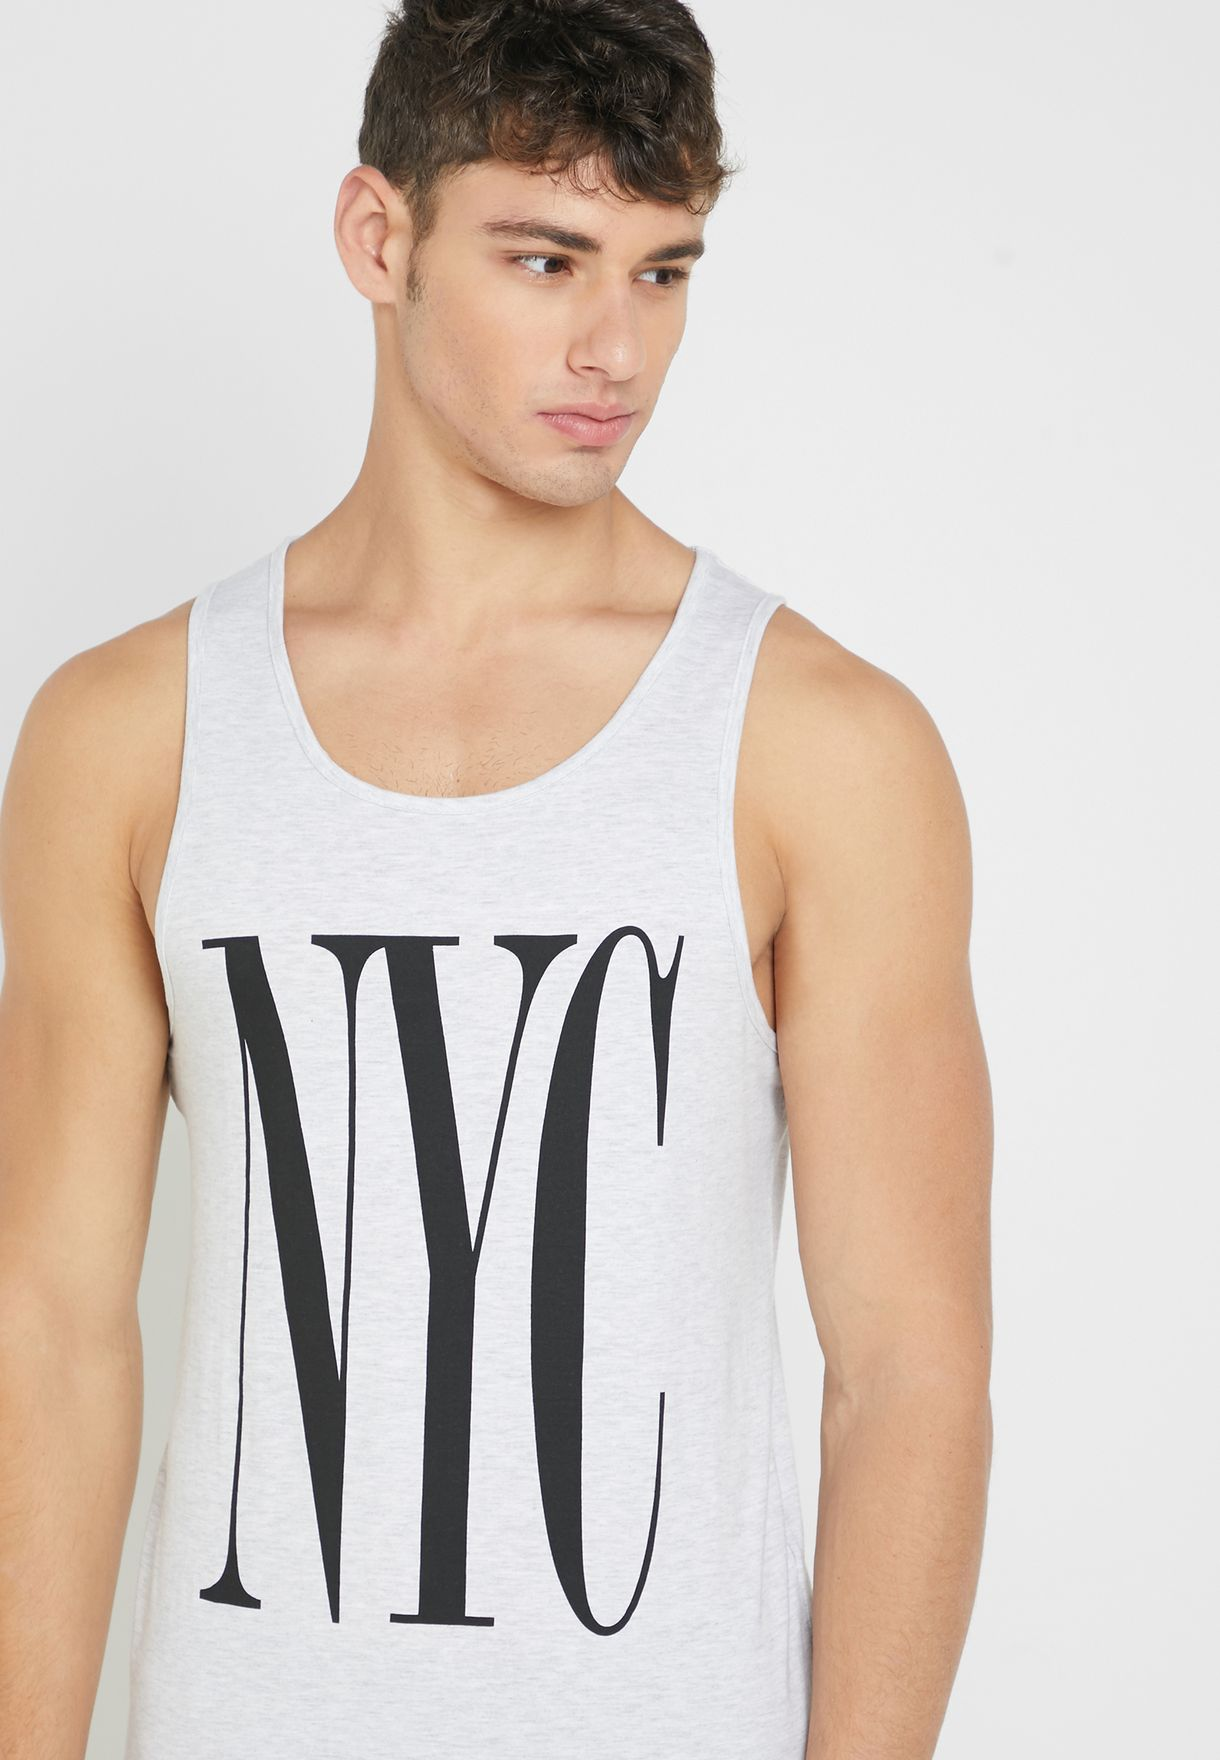 8c4d1ef0 Shop Cotton On grey NYC Sleeveless Crew Neck T-Shirt 361190-144 for ...